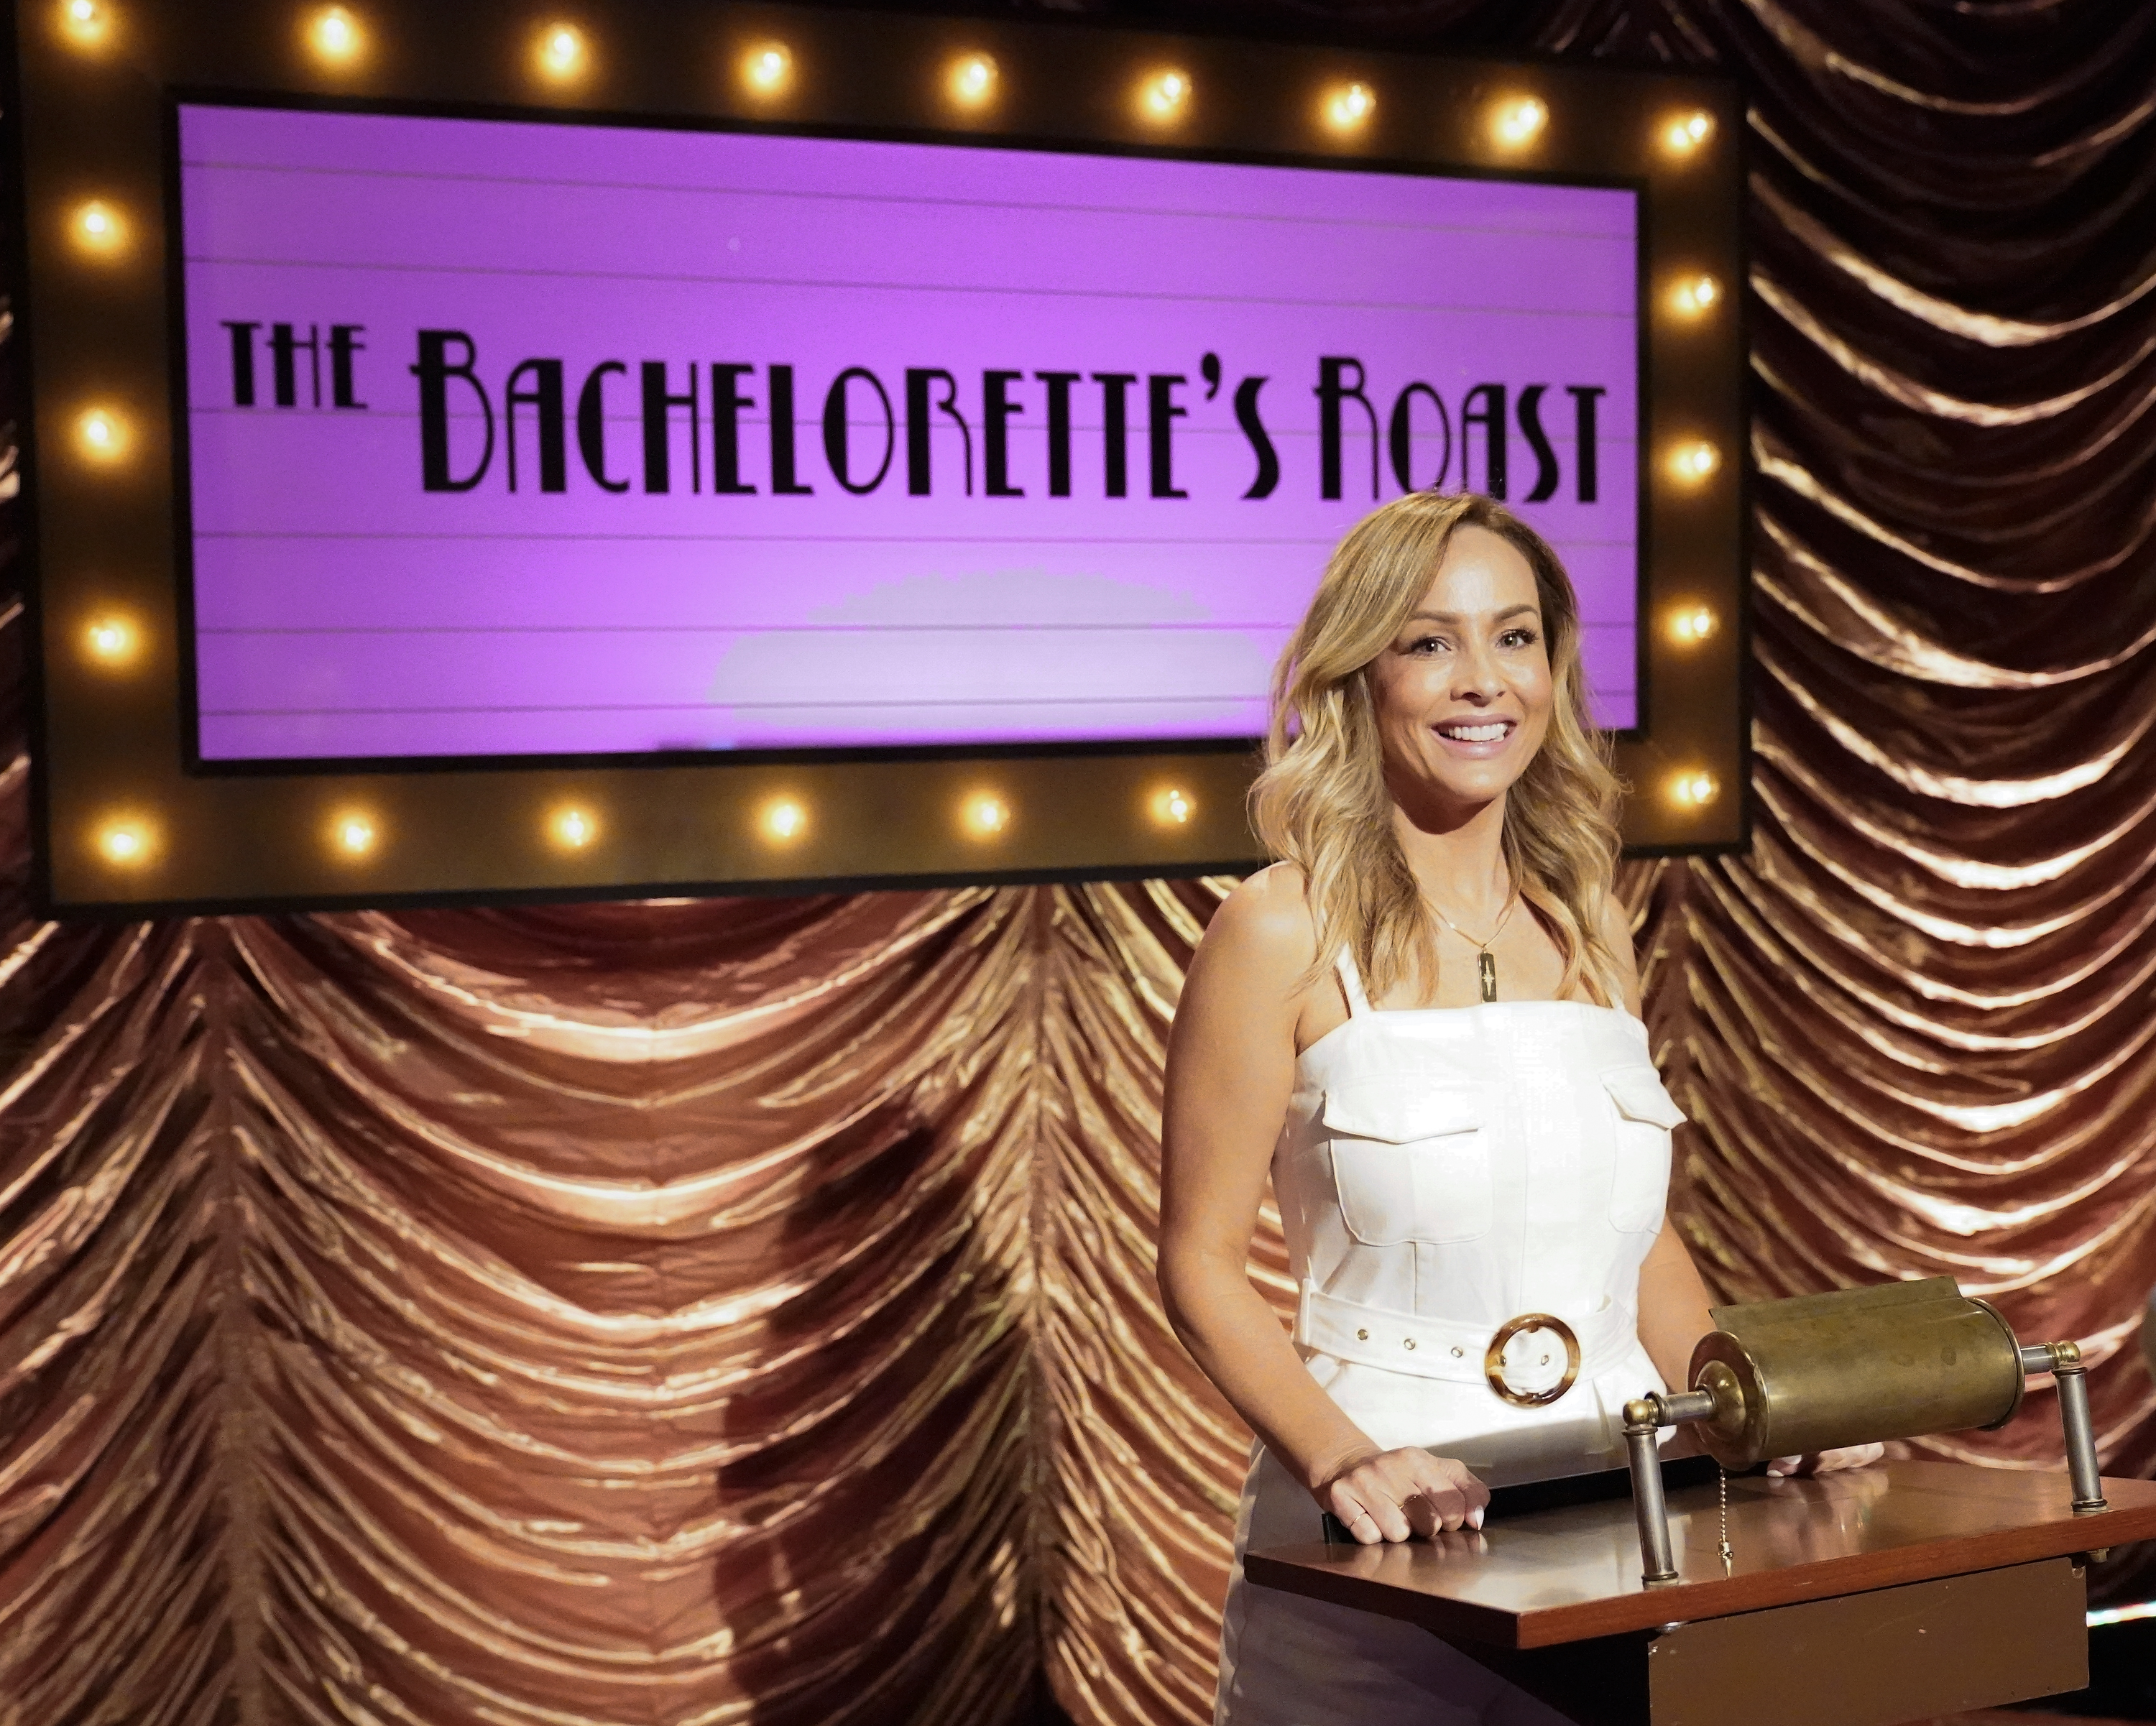 """New """"Bachelorette"""" teaser shows Clare Crawley taking Dale home and sparking major drama...again"""